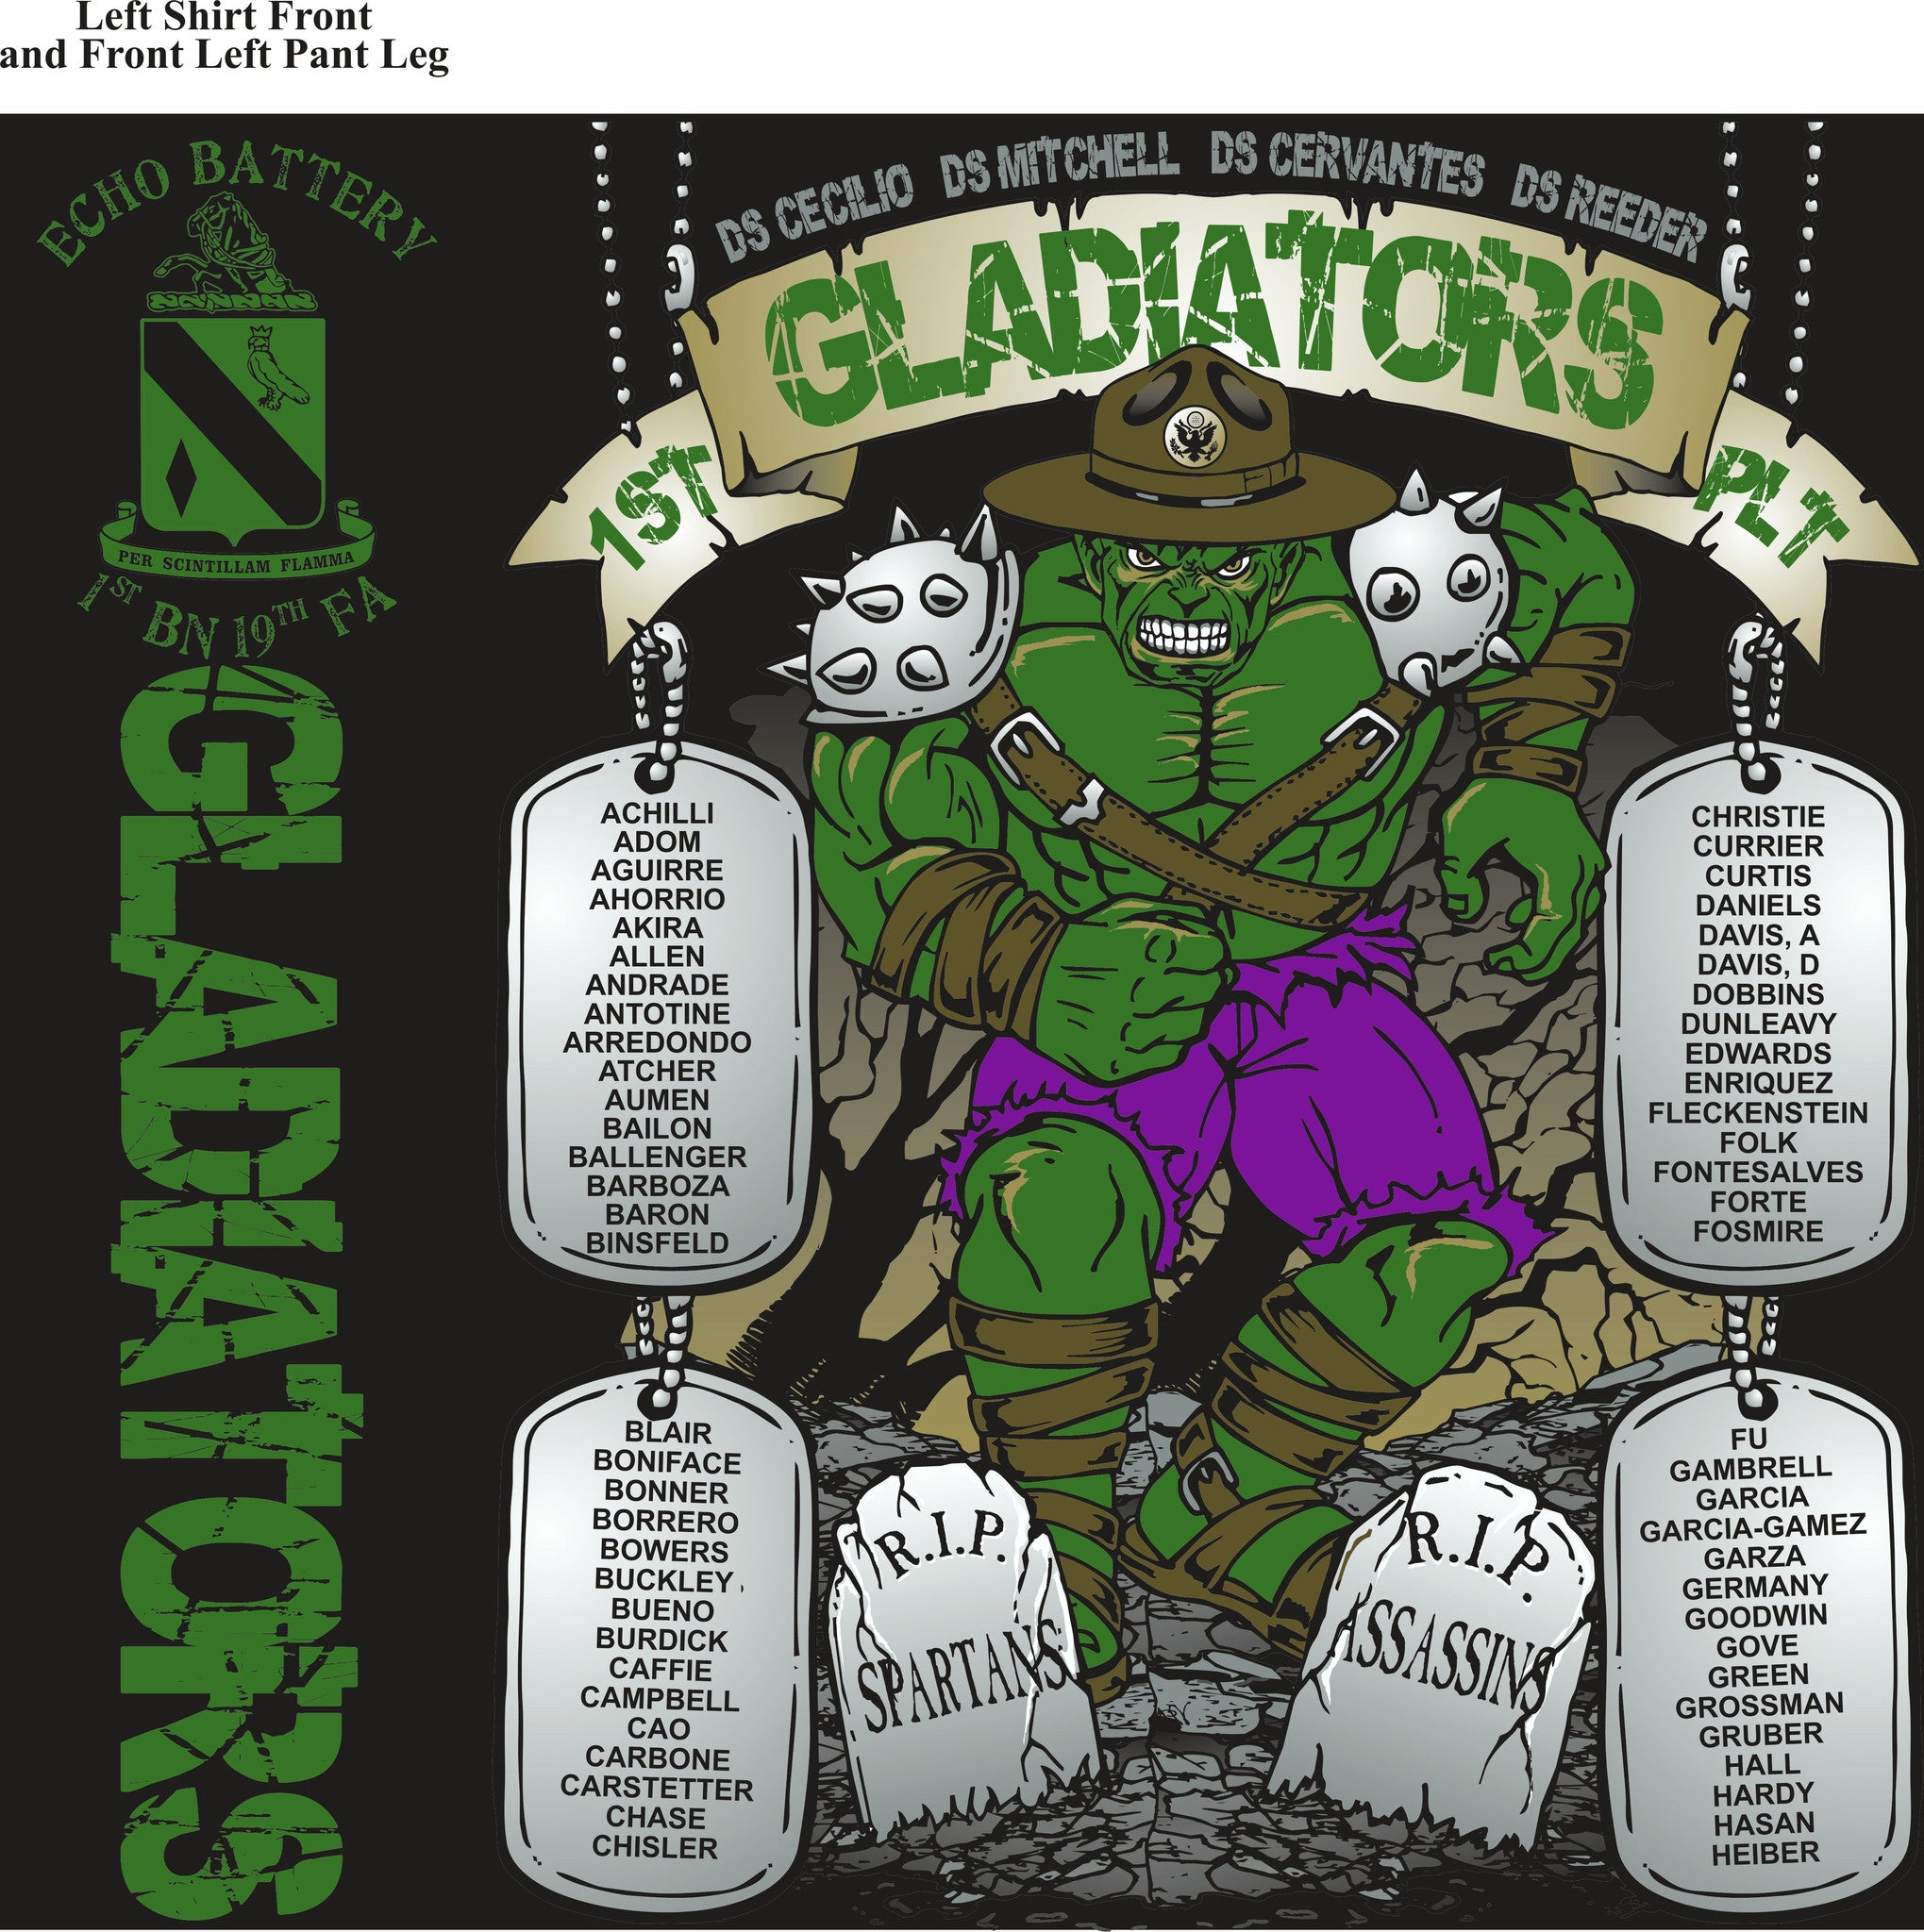 Platoon Shirts ECHO 1st 19th GLADIATORS MAR 2015